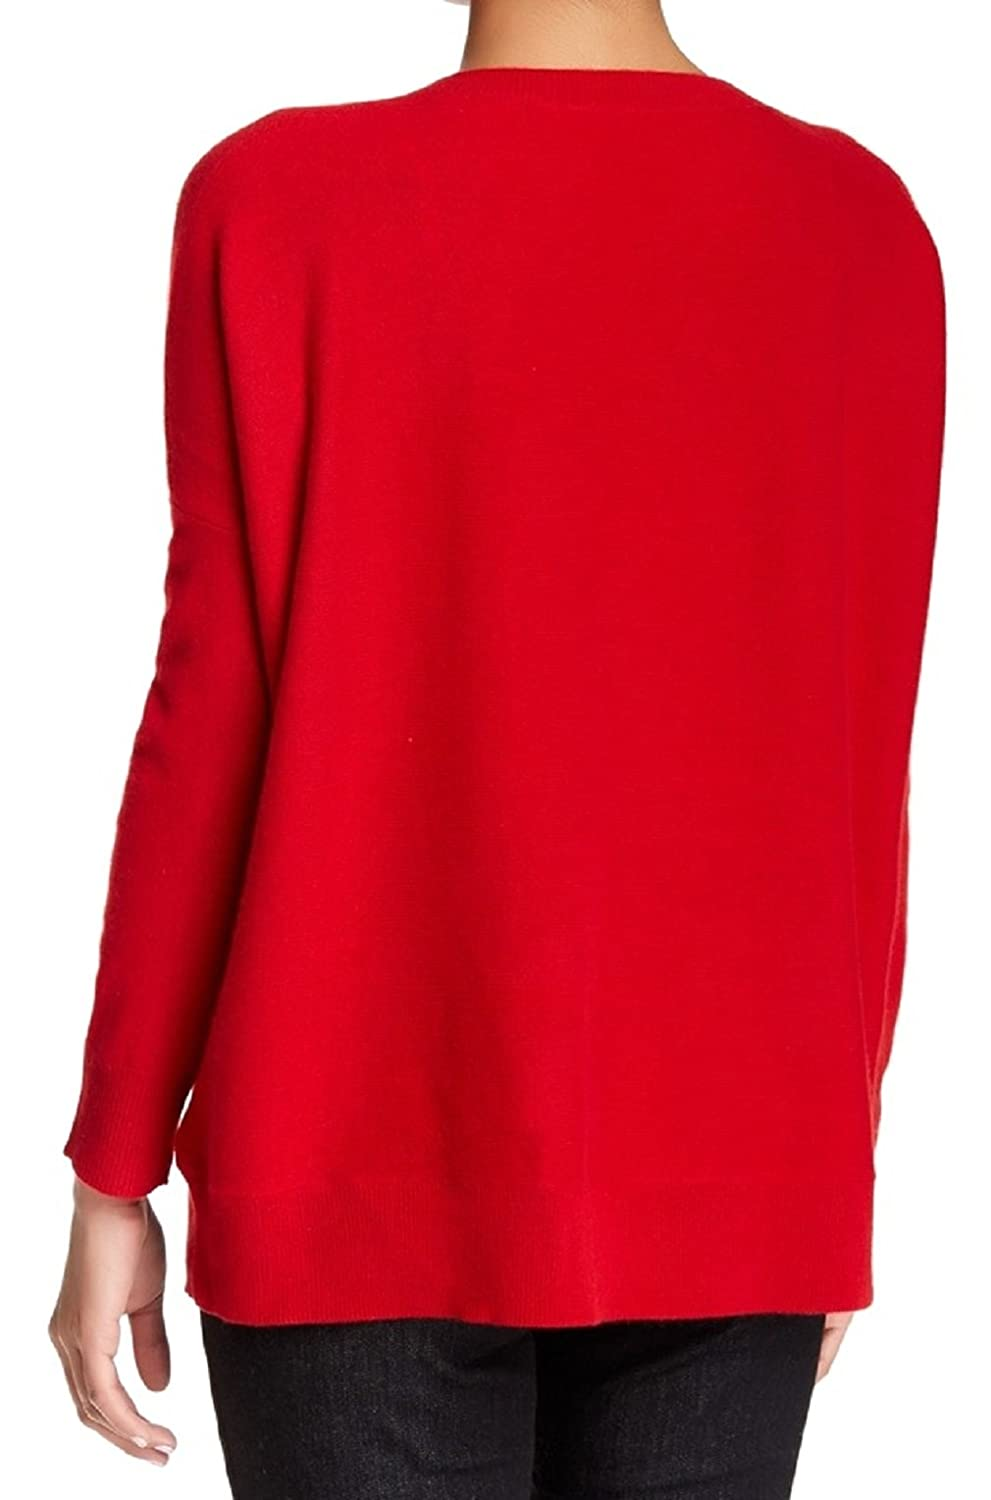 Eileen Fisher Ballet Neck Cashmere Sweater Petite Large, Lacquer